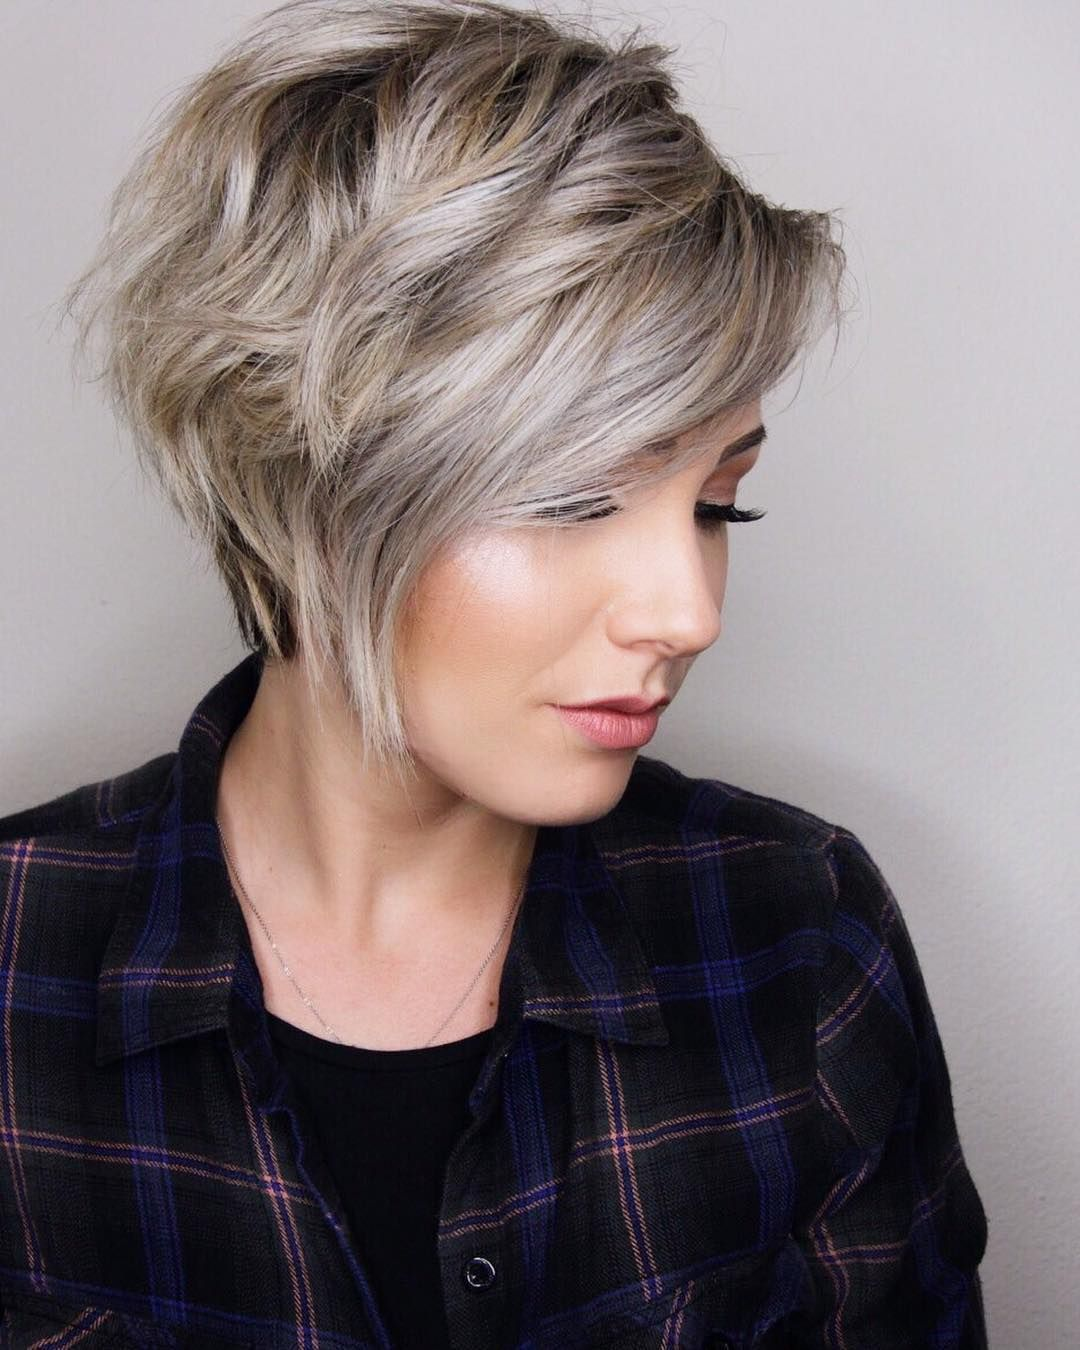 Layered Short hairstyles pictures